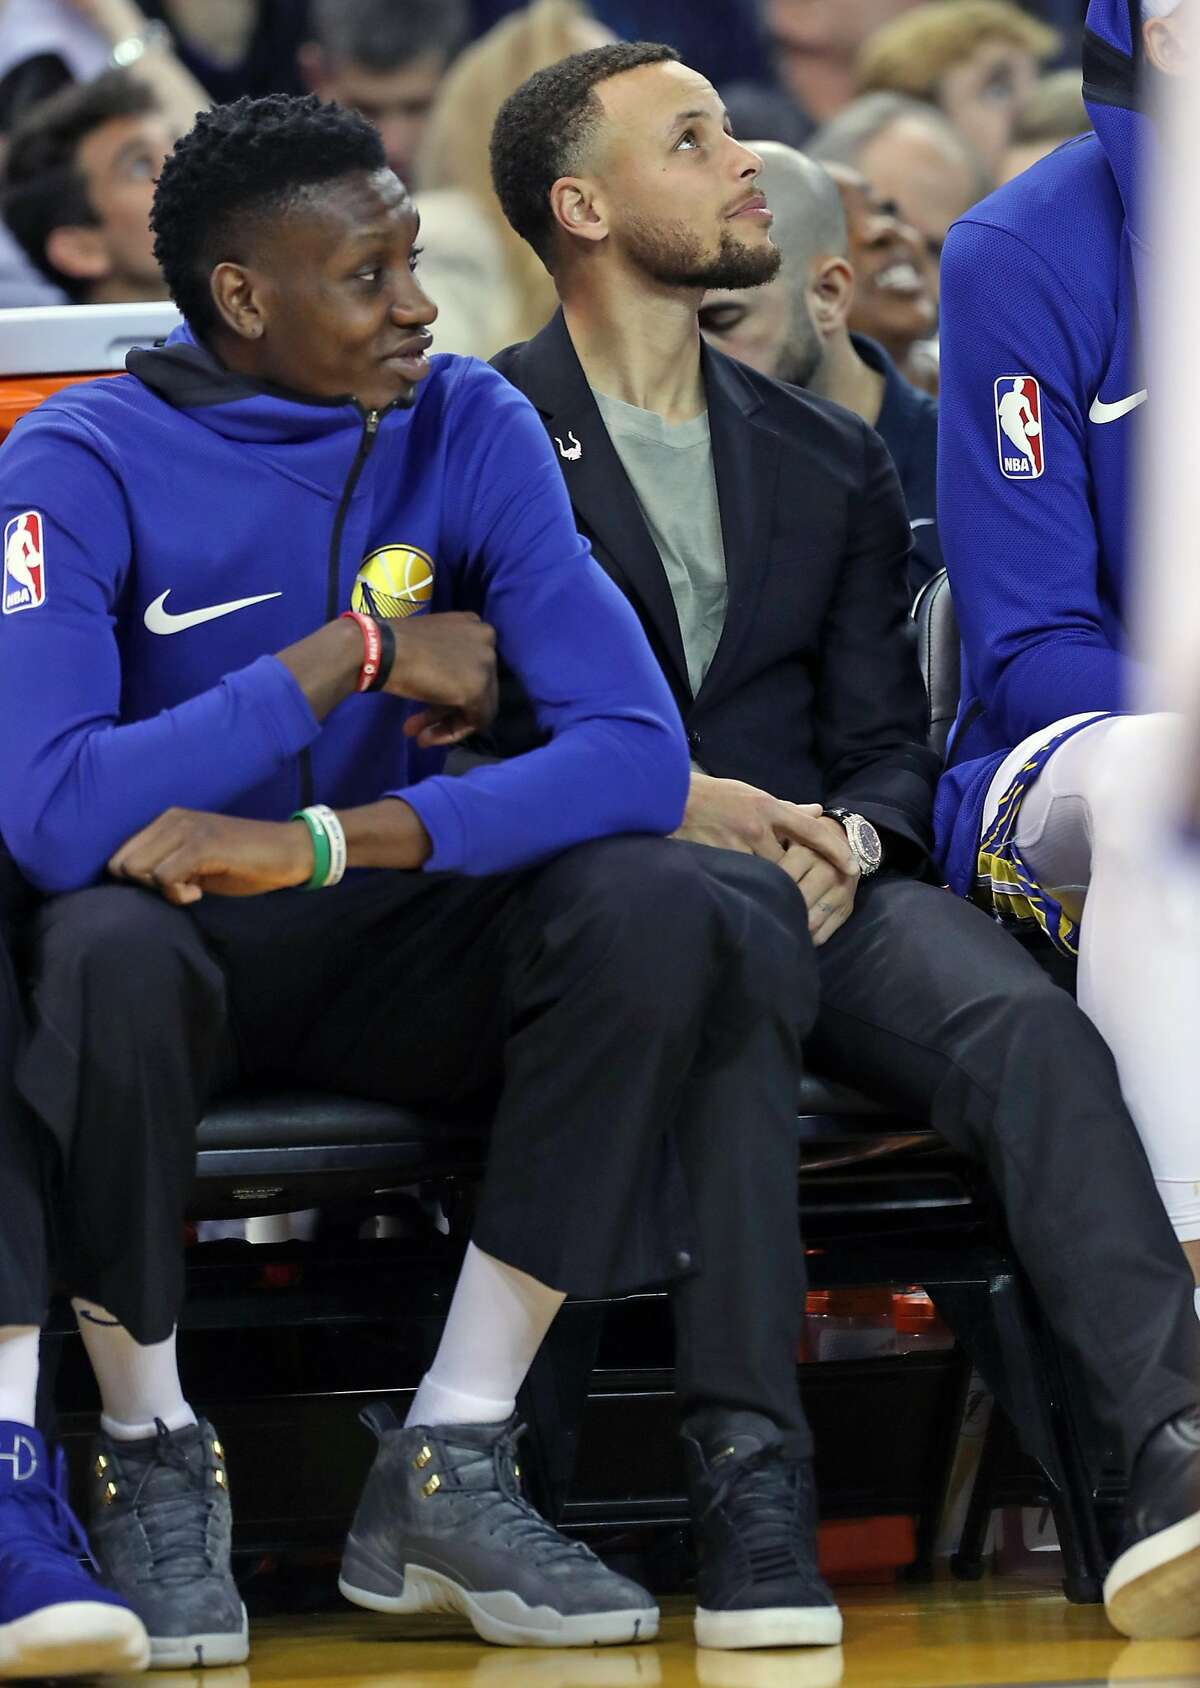 Golden State Warriors' Stephen Curry and Chris Boucher watch action in 2nd quarter against Los Angeles Lakers during NBA game at Oracle Arena in Oakland on Wednesday, March 14, 2018.